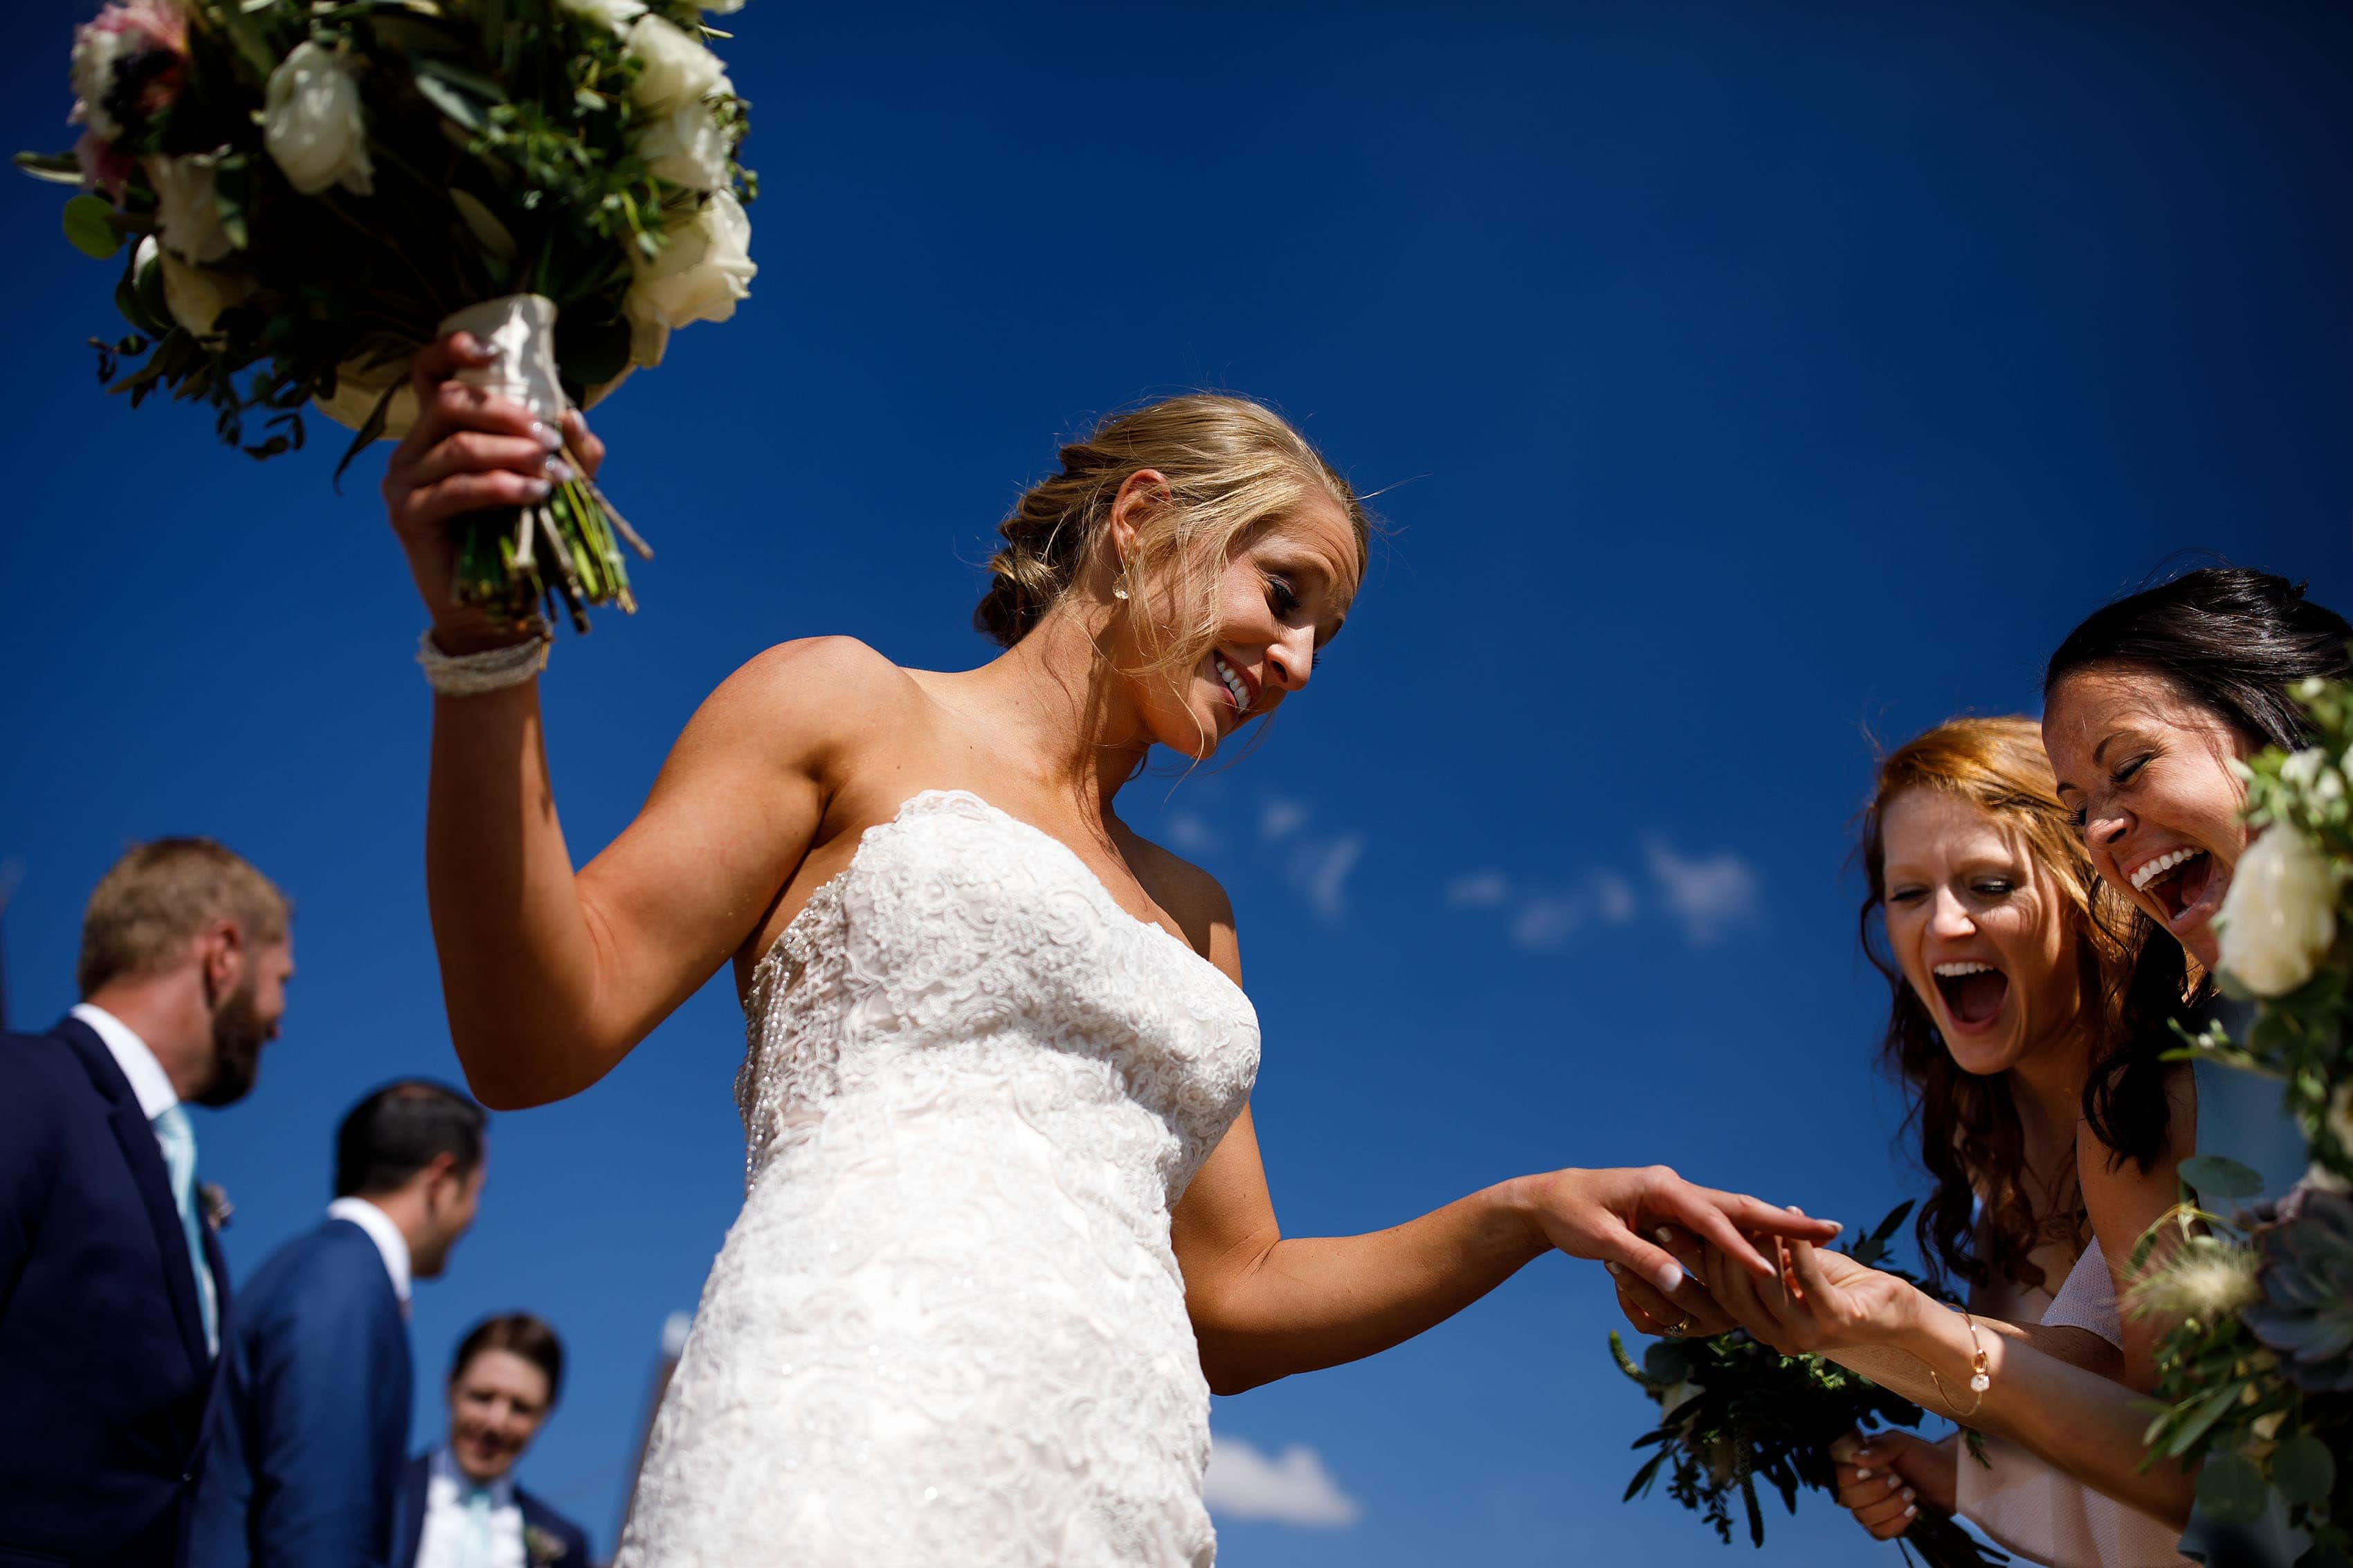 A bride shows off her ring after her Keystone wedding ceremony atop Dercum Mountain on a summer day in August